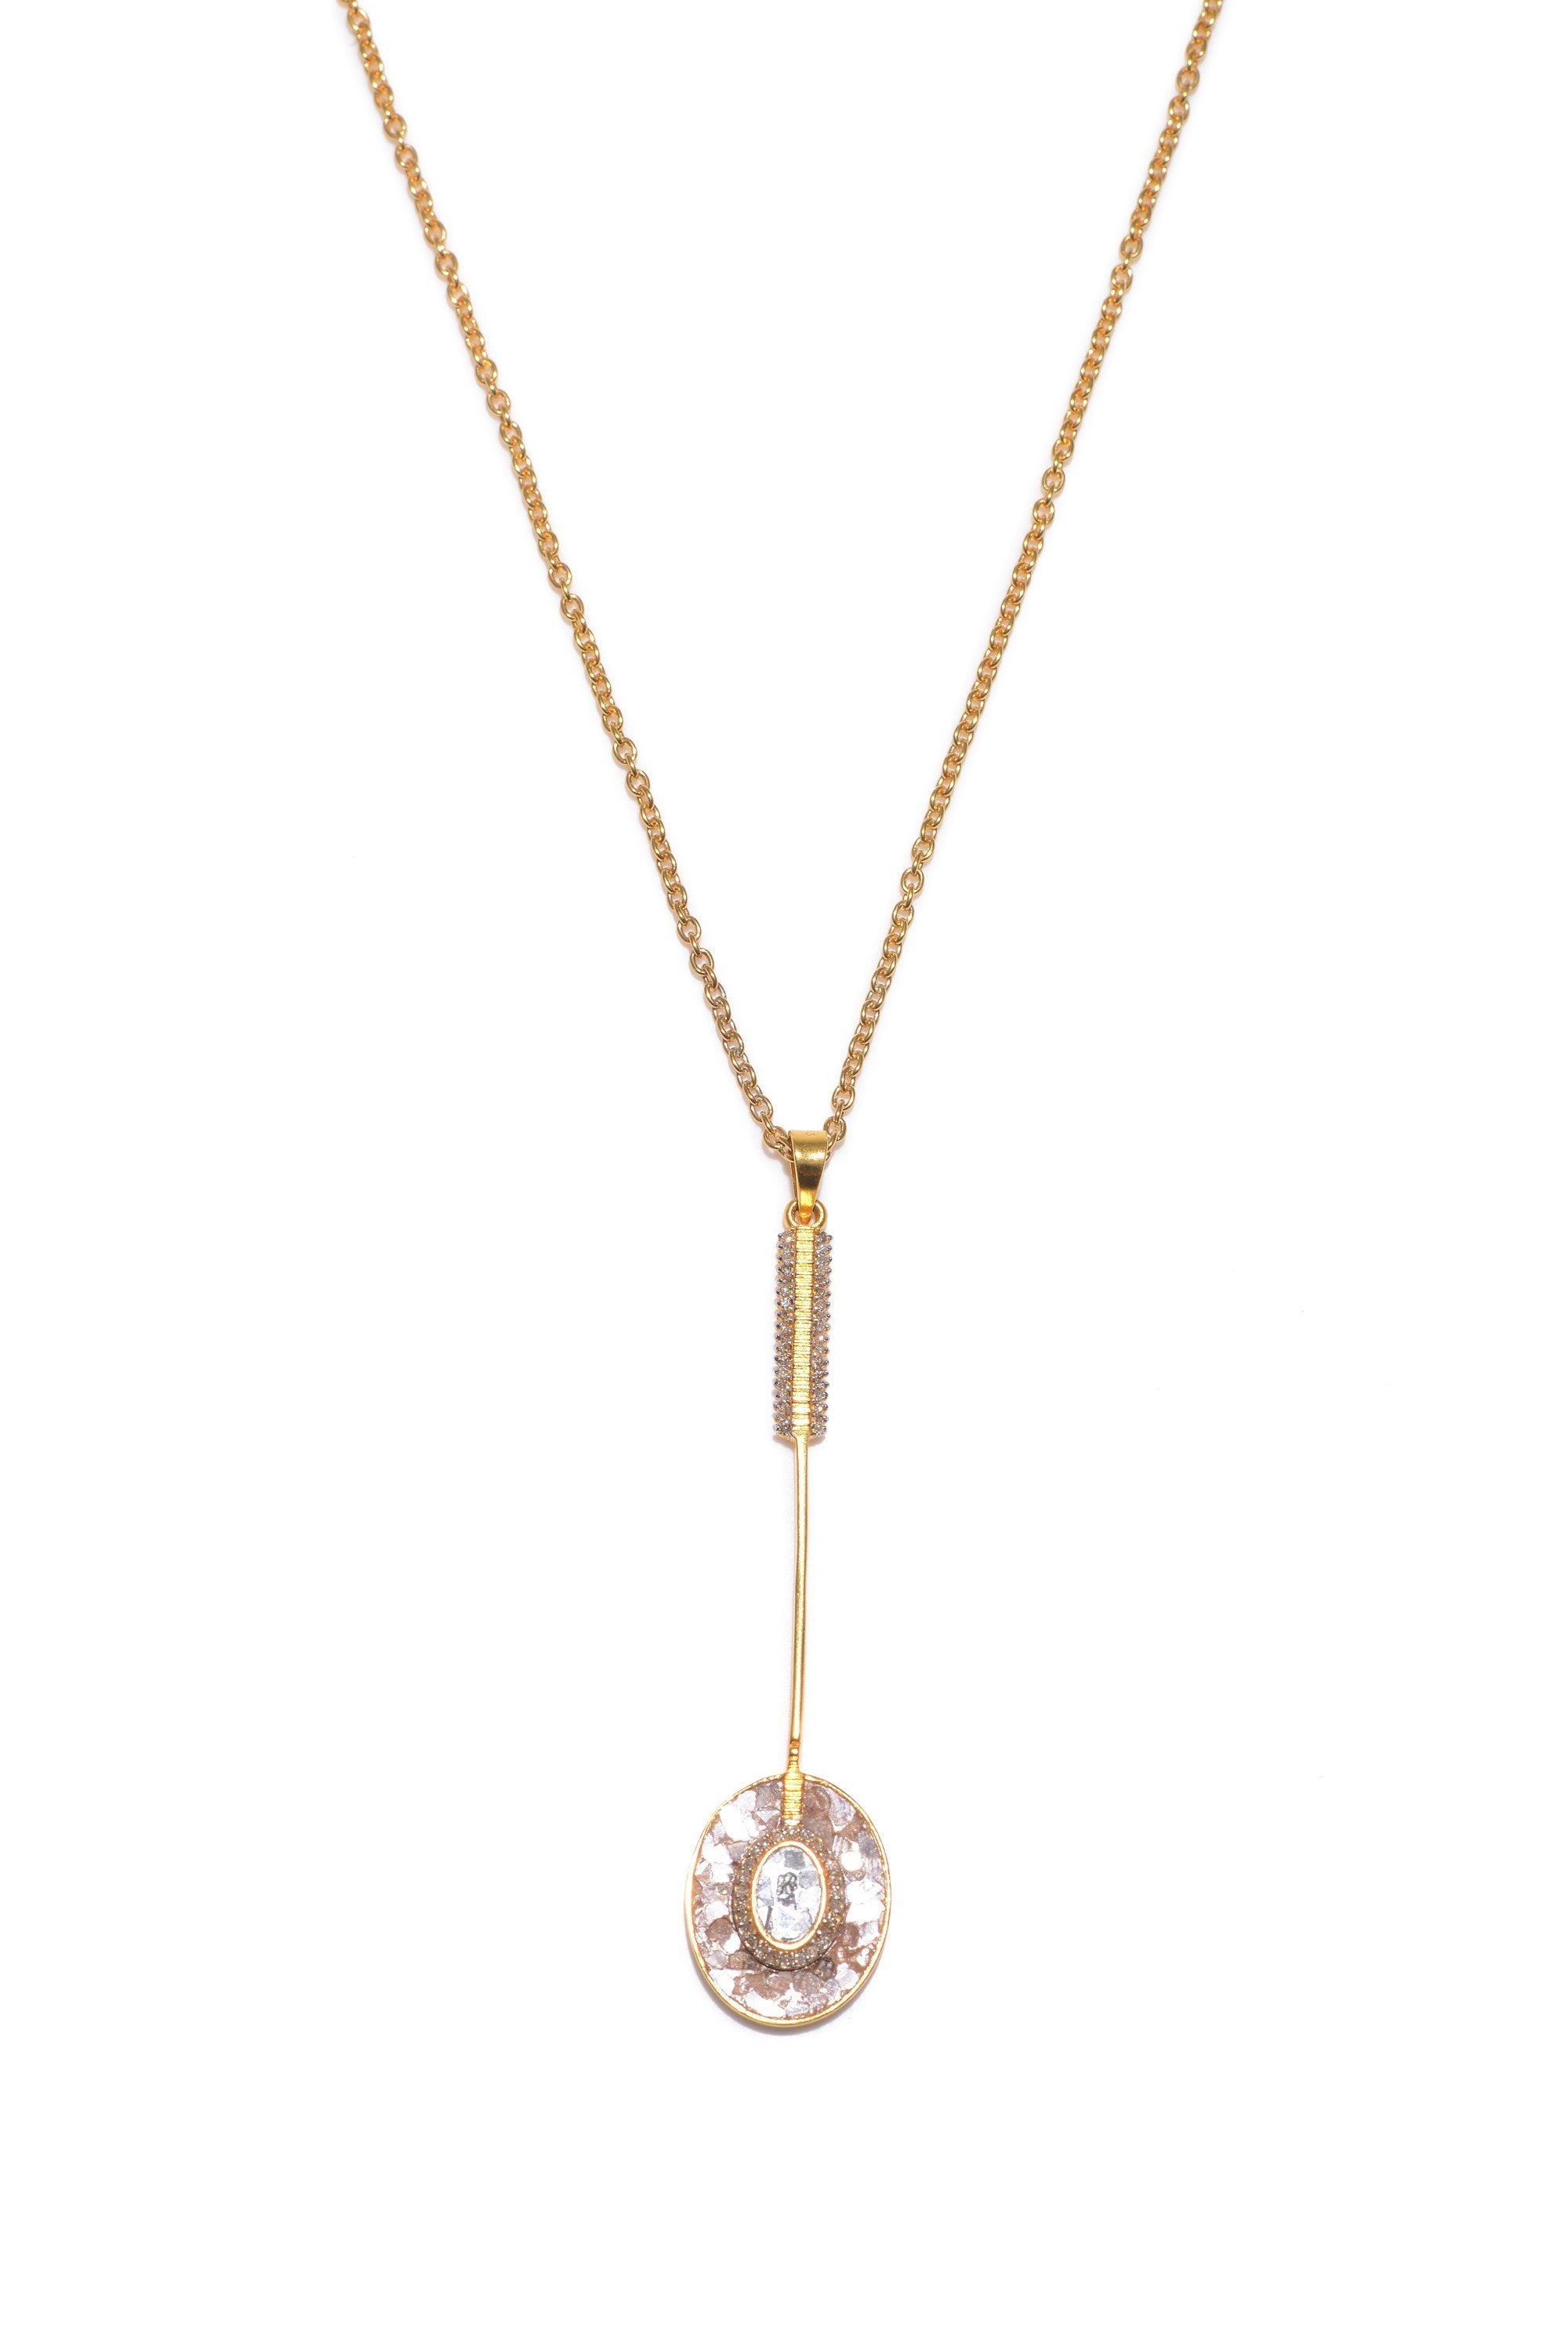 18k gold diamond drop necklace